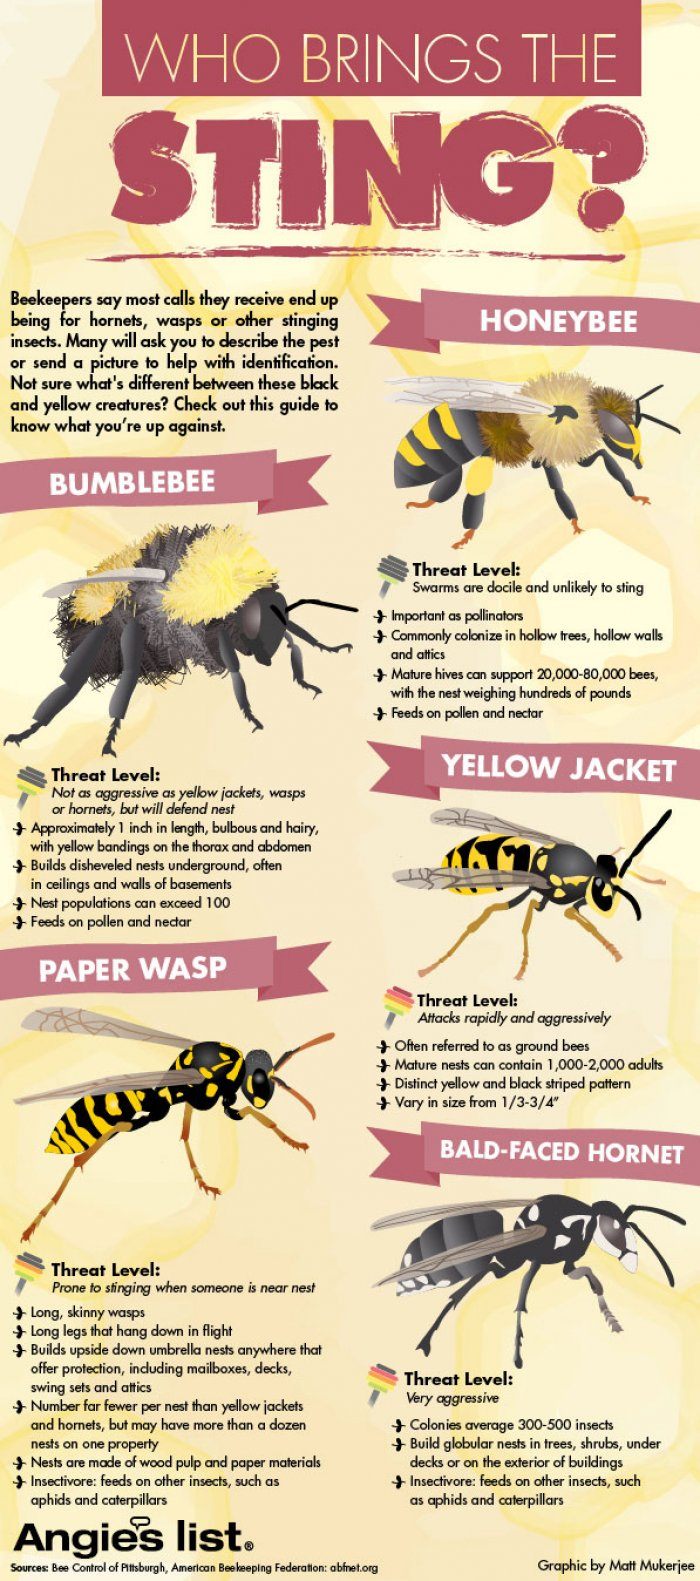 Bees vs. Wasps: Who Brings The Sting? - Infographic